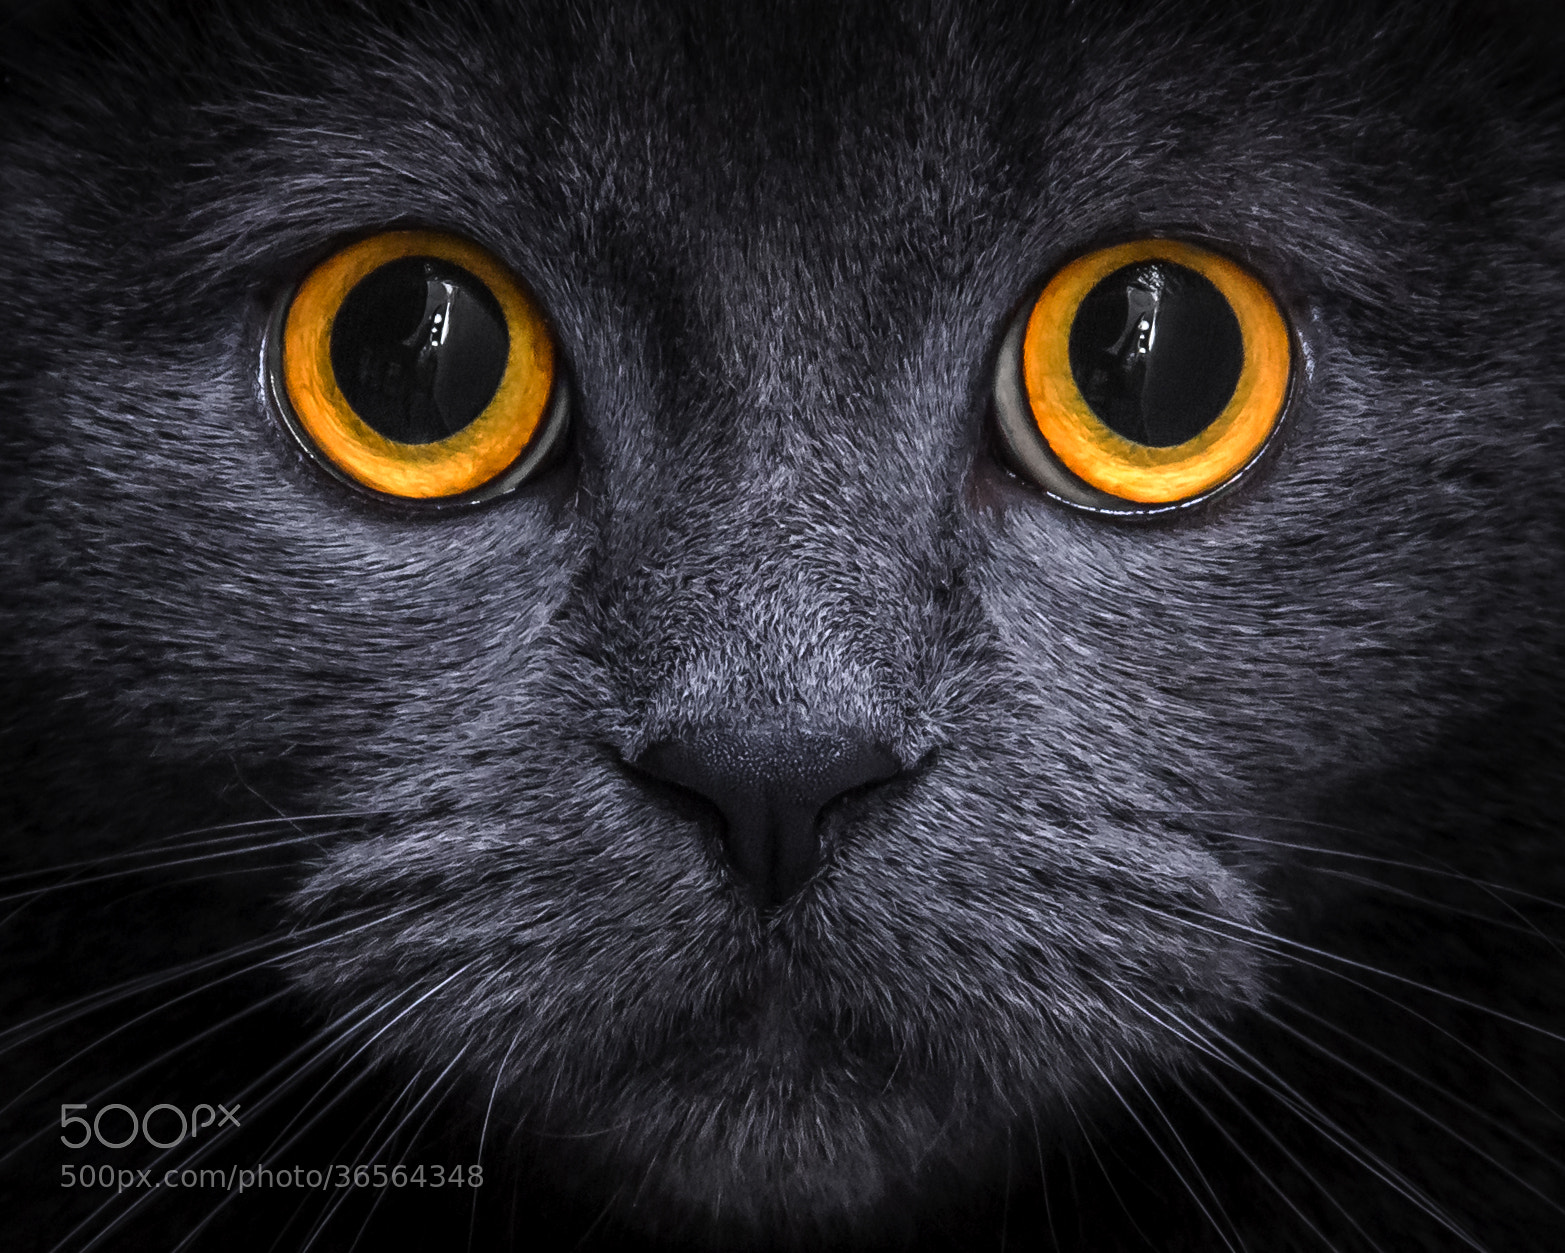 Photograph The Eyes of the Cat by Emanuele Colombo on 500px